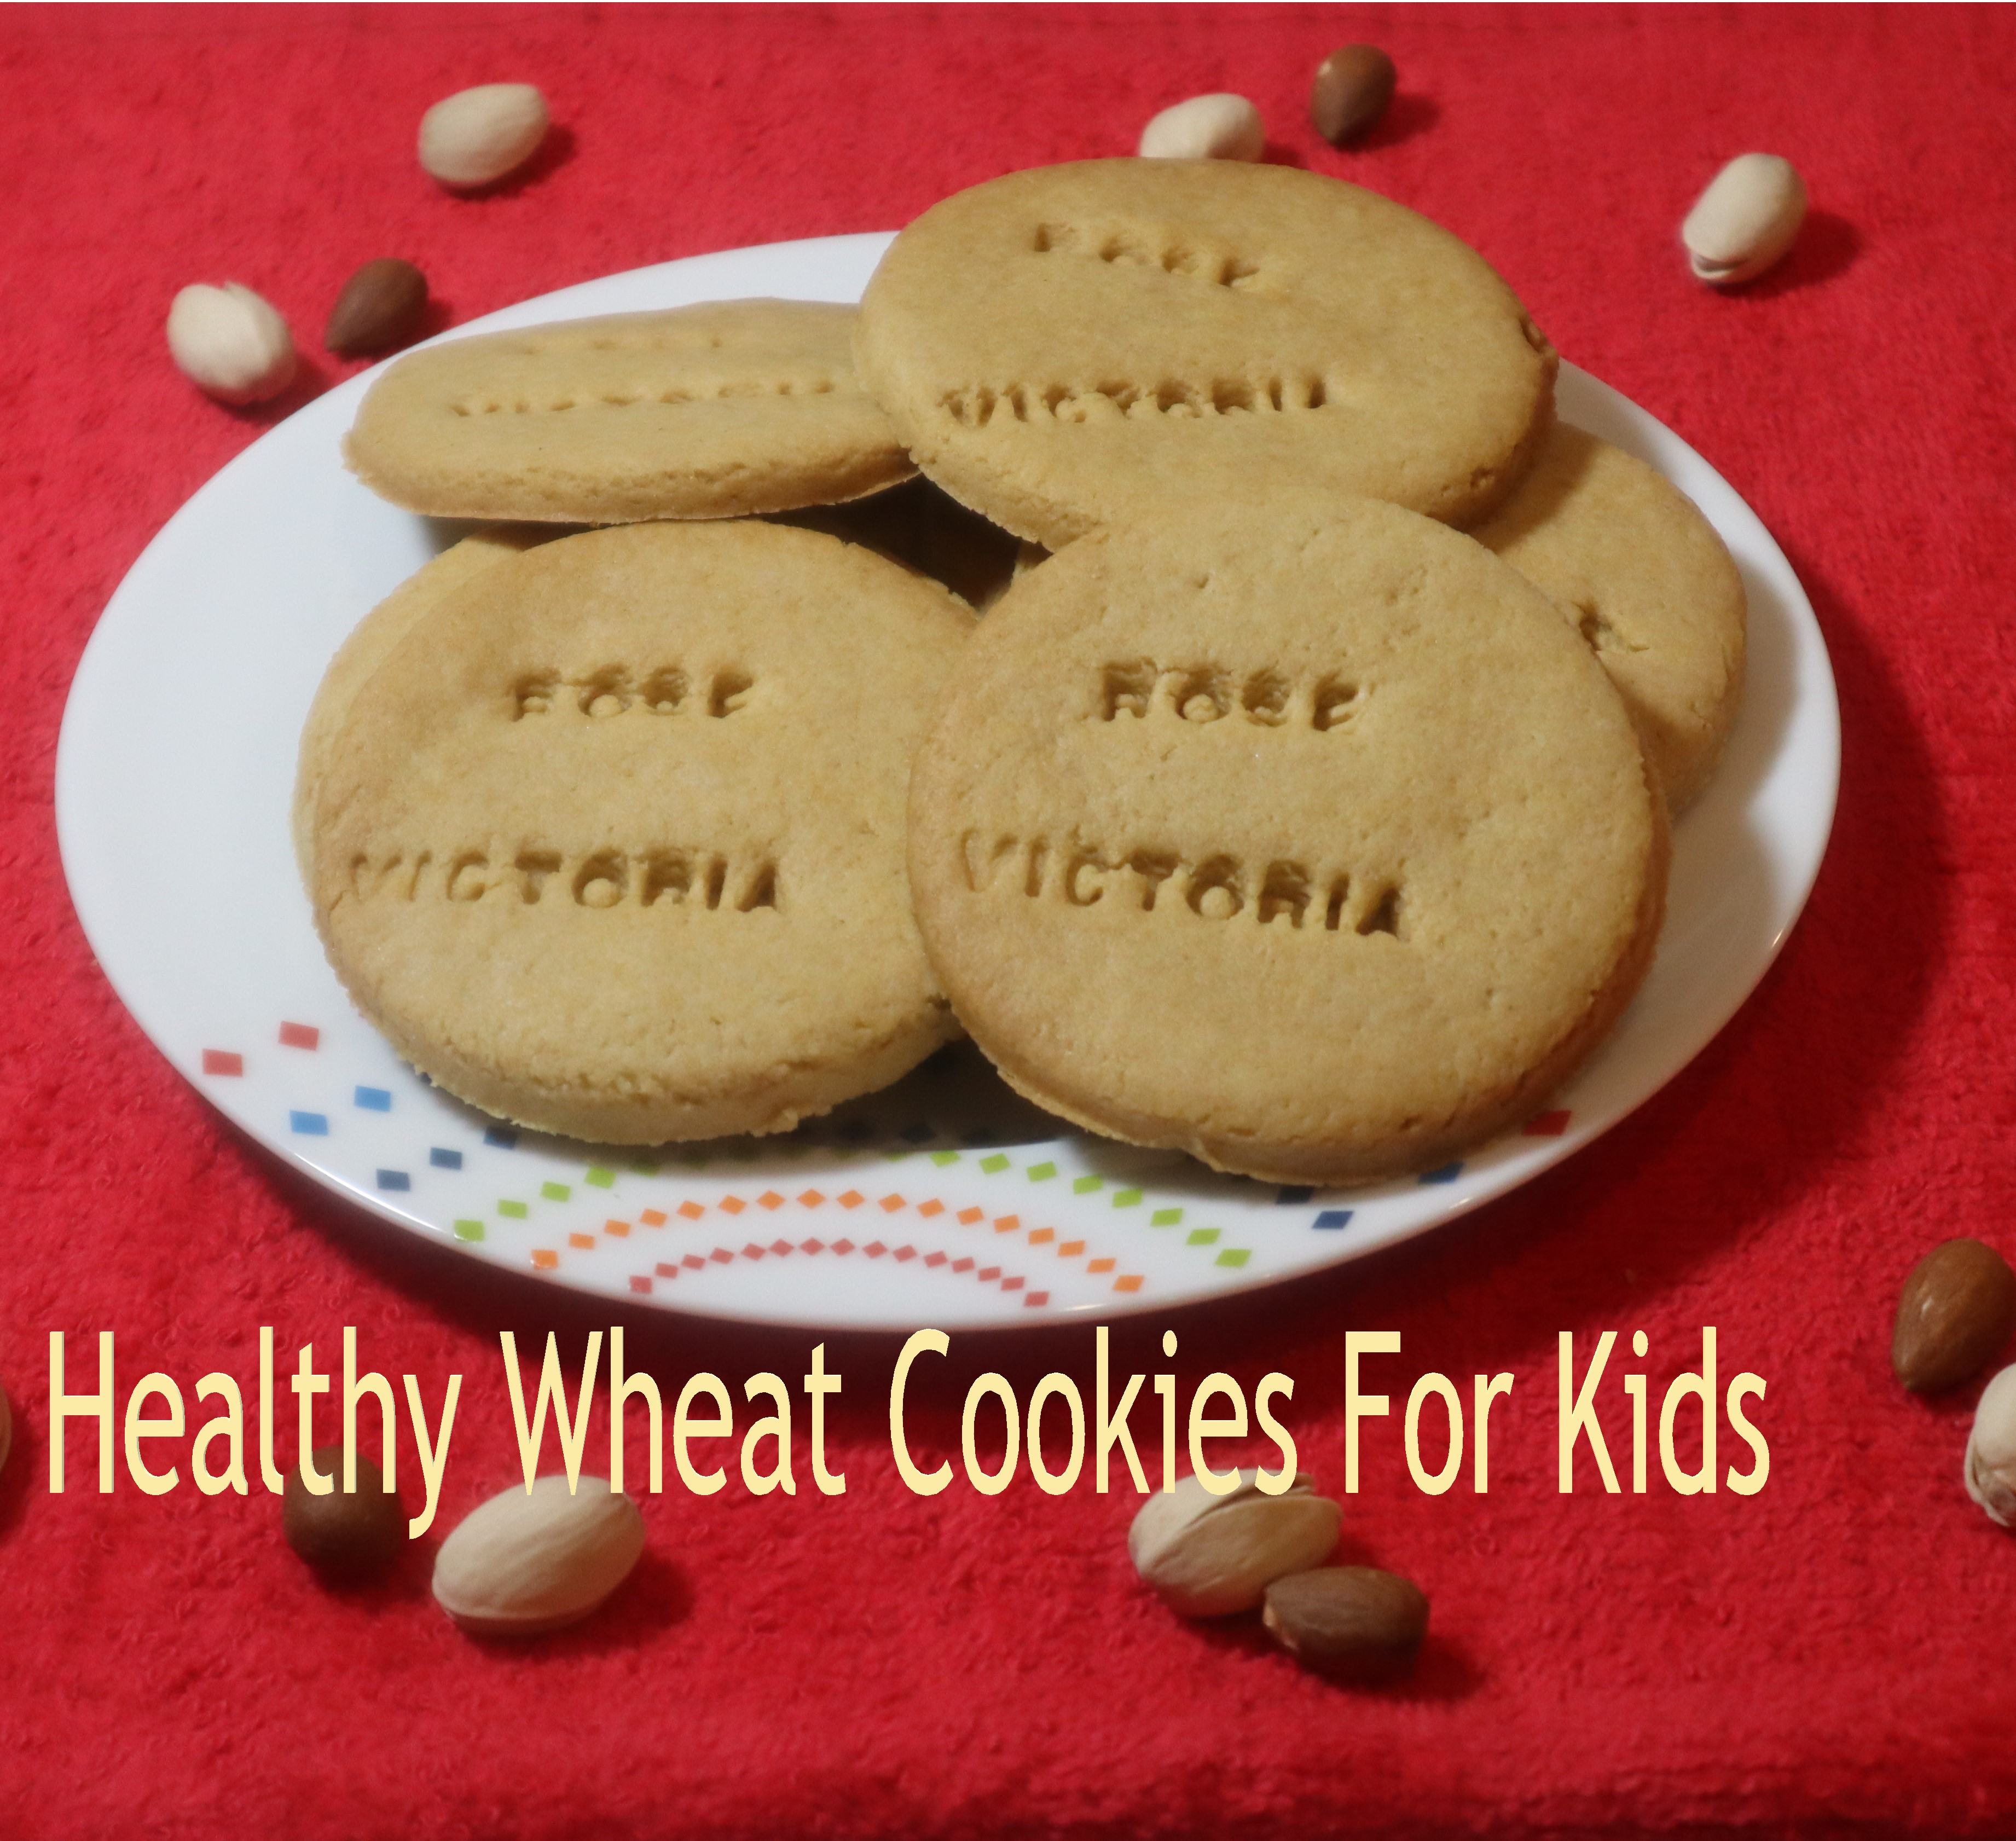 Whole wheat cookies for kids